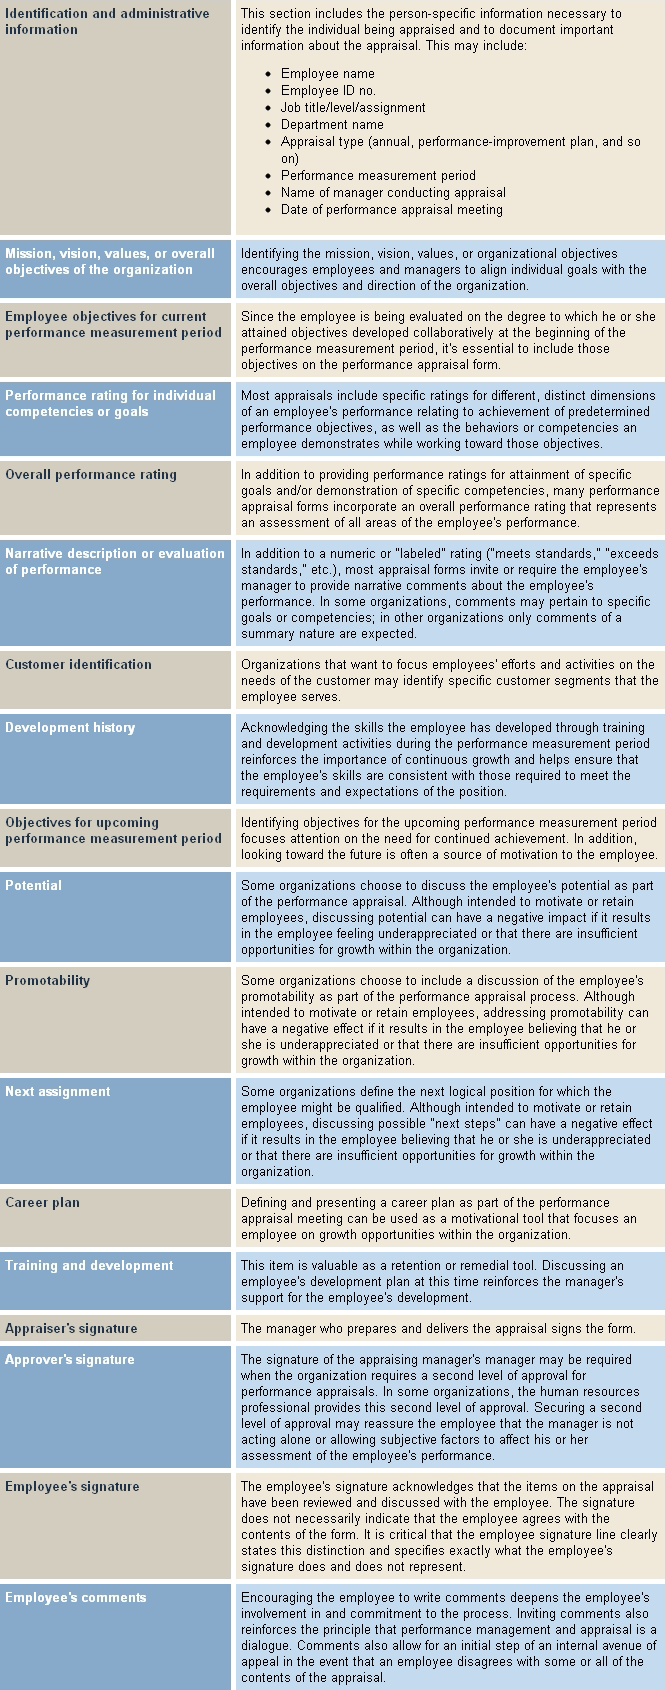 Items To Consider Including On The Performance Appraisal Form